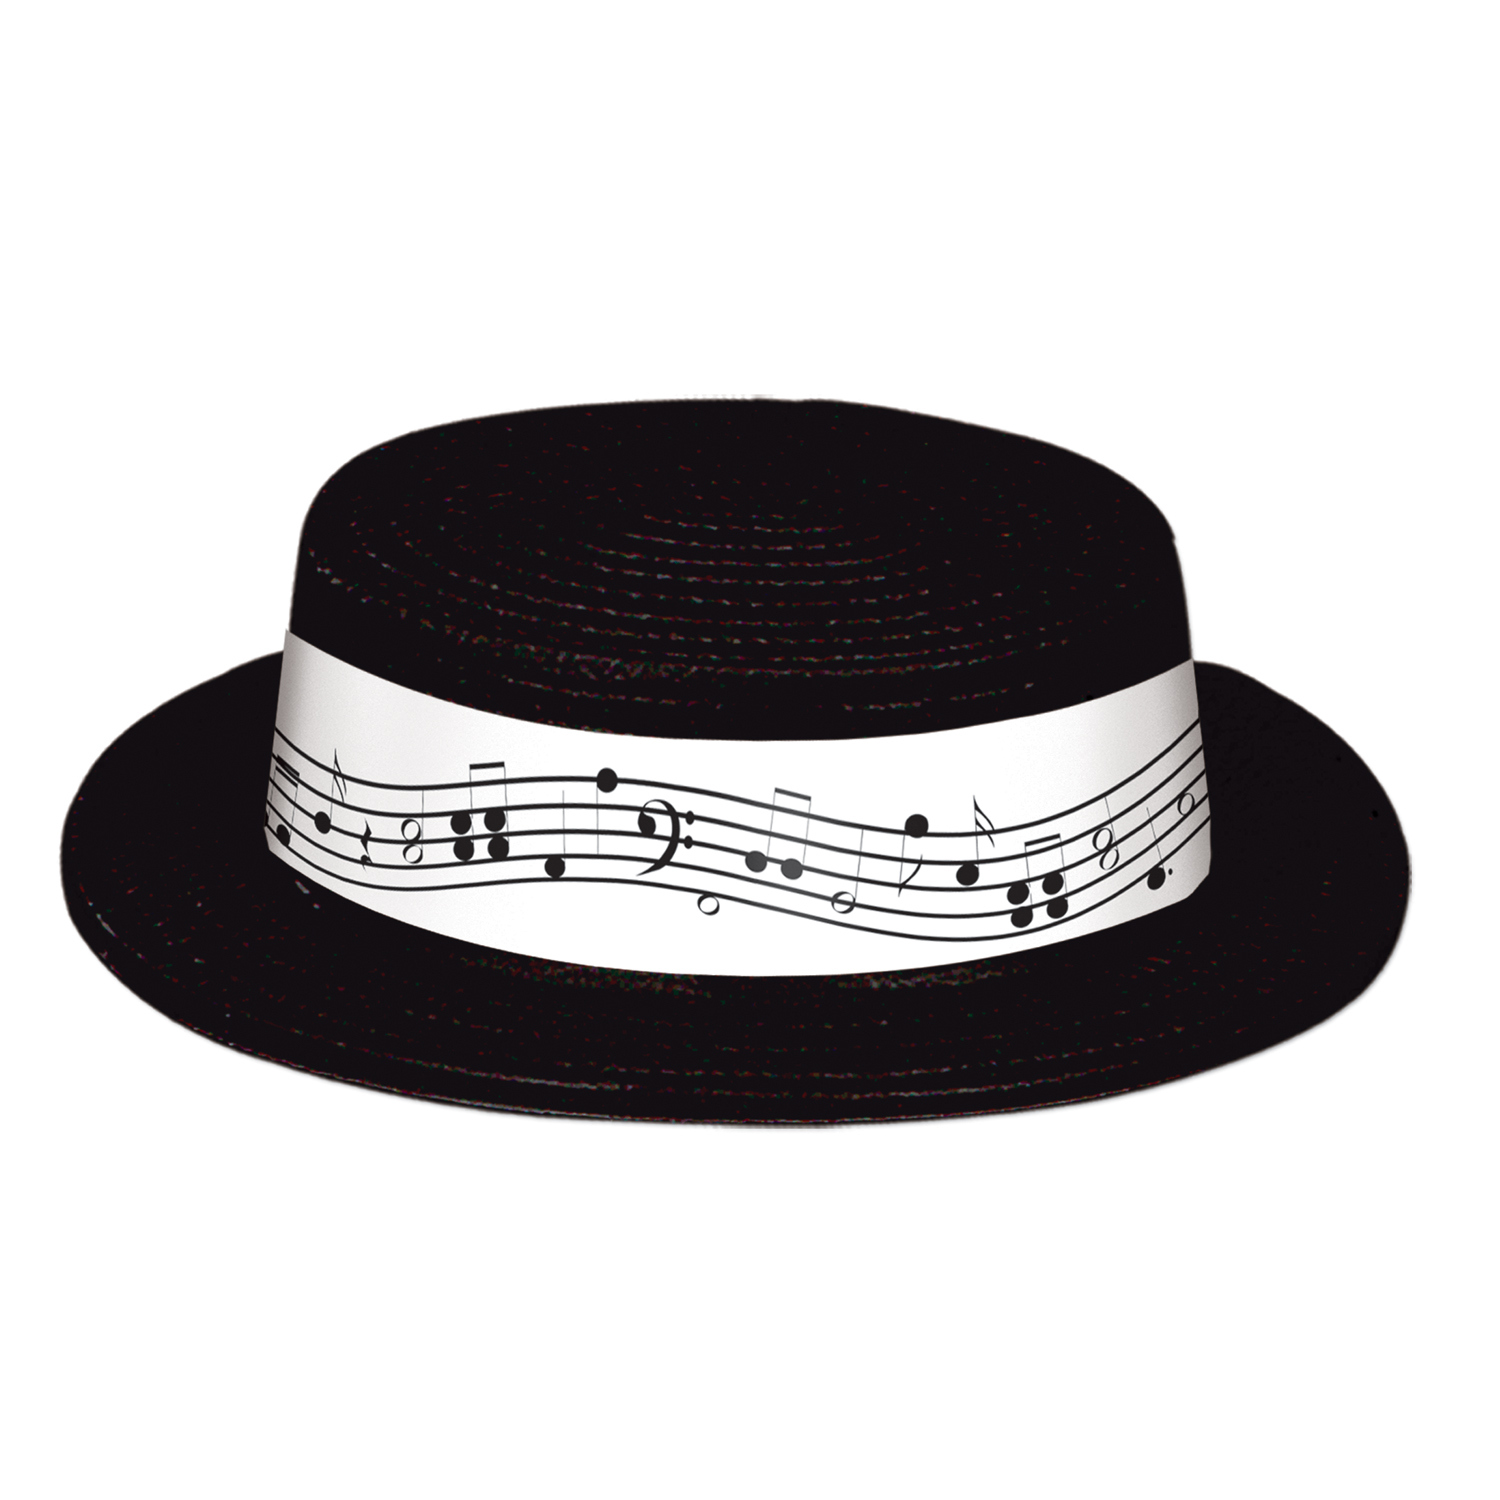 Black Plastic Skimmer w/Music Band (Pack of 24) hat, music, educational, costume, accessory